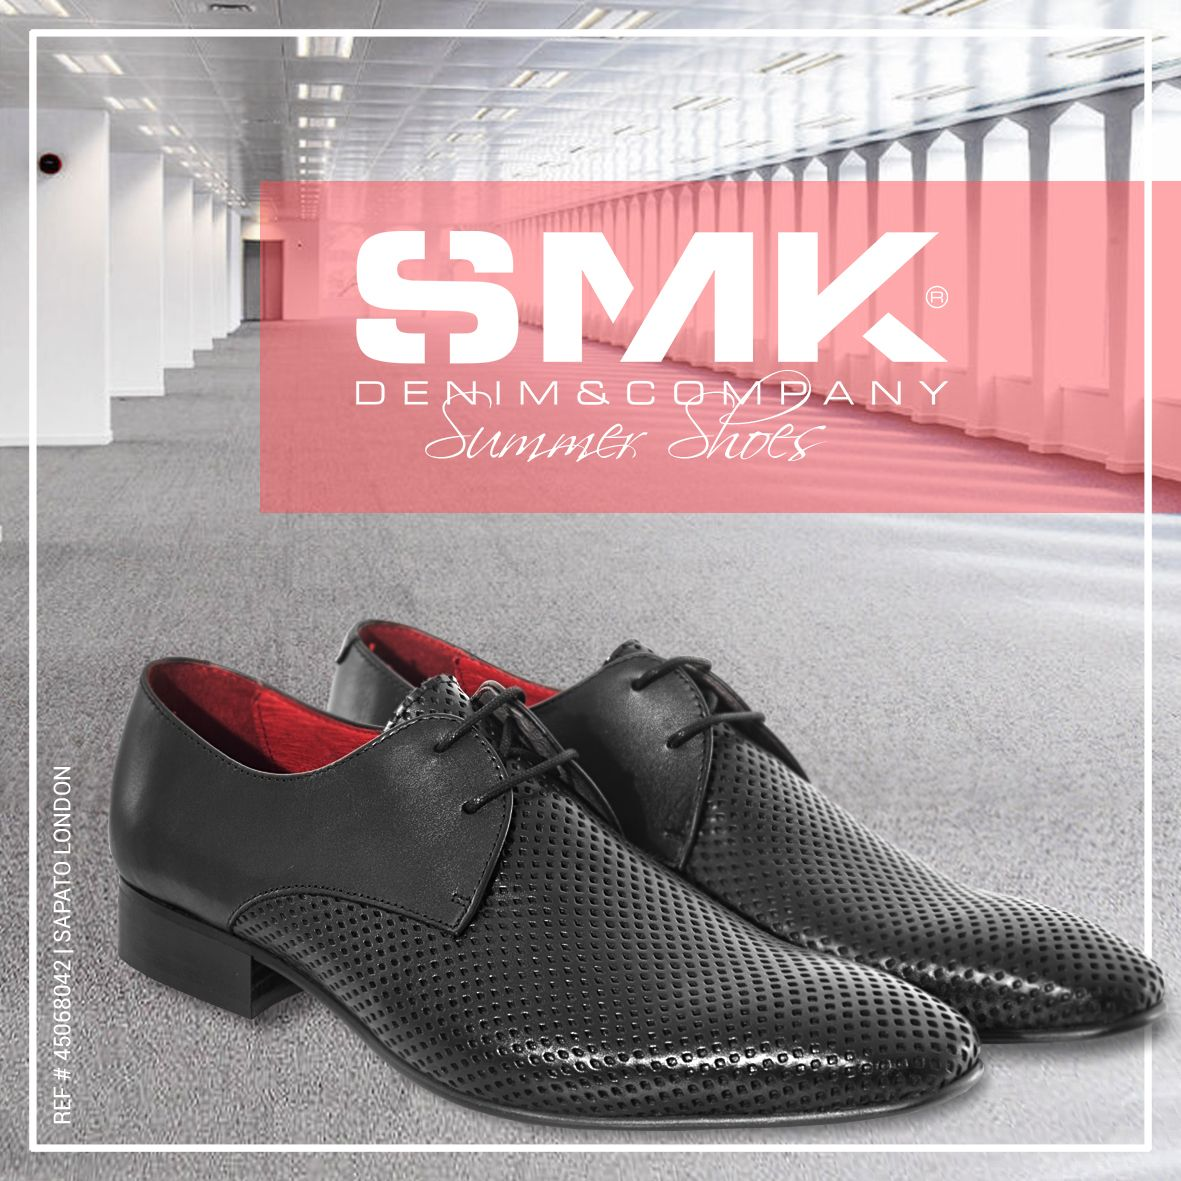 NEW COLLECTION 2016 | SMK ONLINESHOP REF # 45068042 | SAPATO LONDON PREÇO | http://bit.ly/29M2LkU ‪#‎smkdenim‬, ‪#‎smk‬, ‪#‎Shoes‬, ‪#‎newcollection‬, ‪#‎madeinportugal‬, ‪#‎summer2016‬, ‪#‎Classic‬, ‪#‎sapatos‬, ‪#‎calçado‬